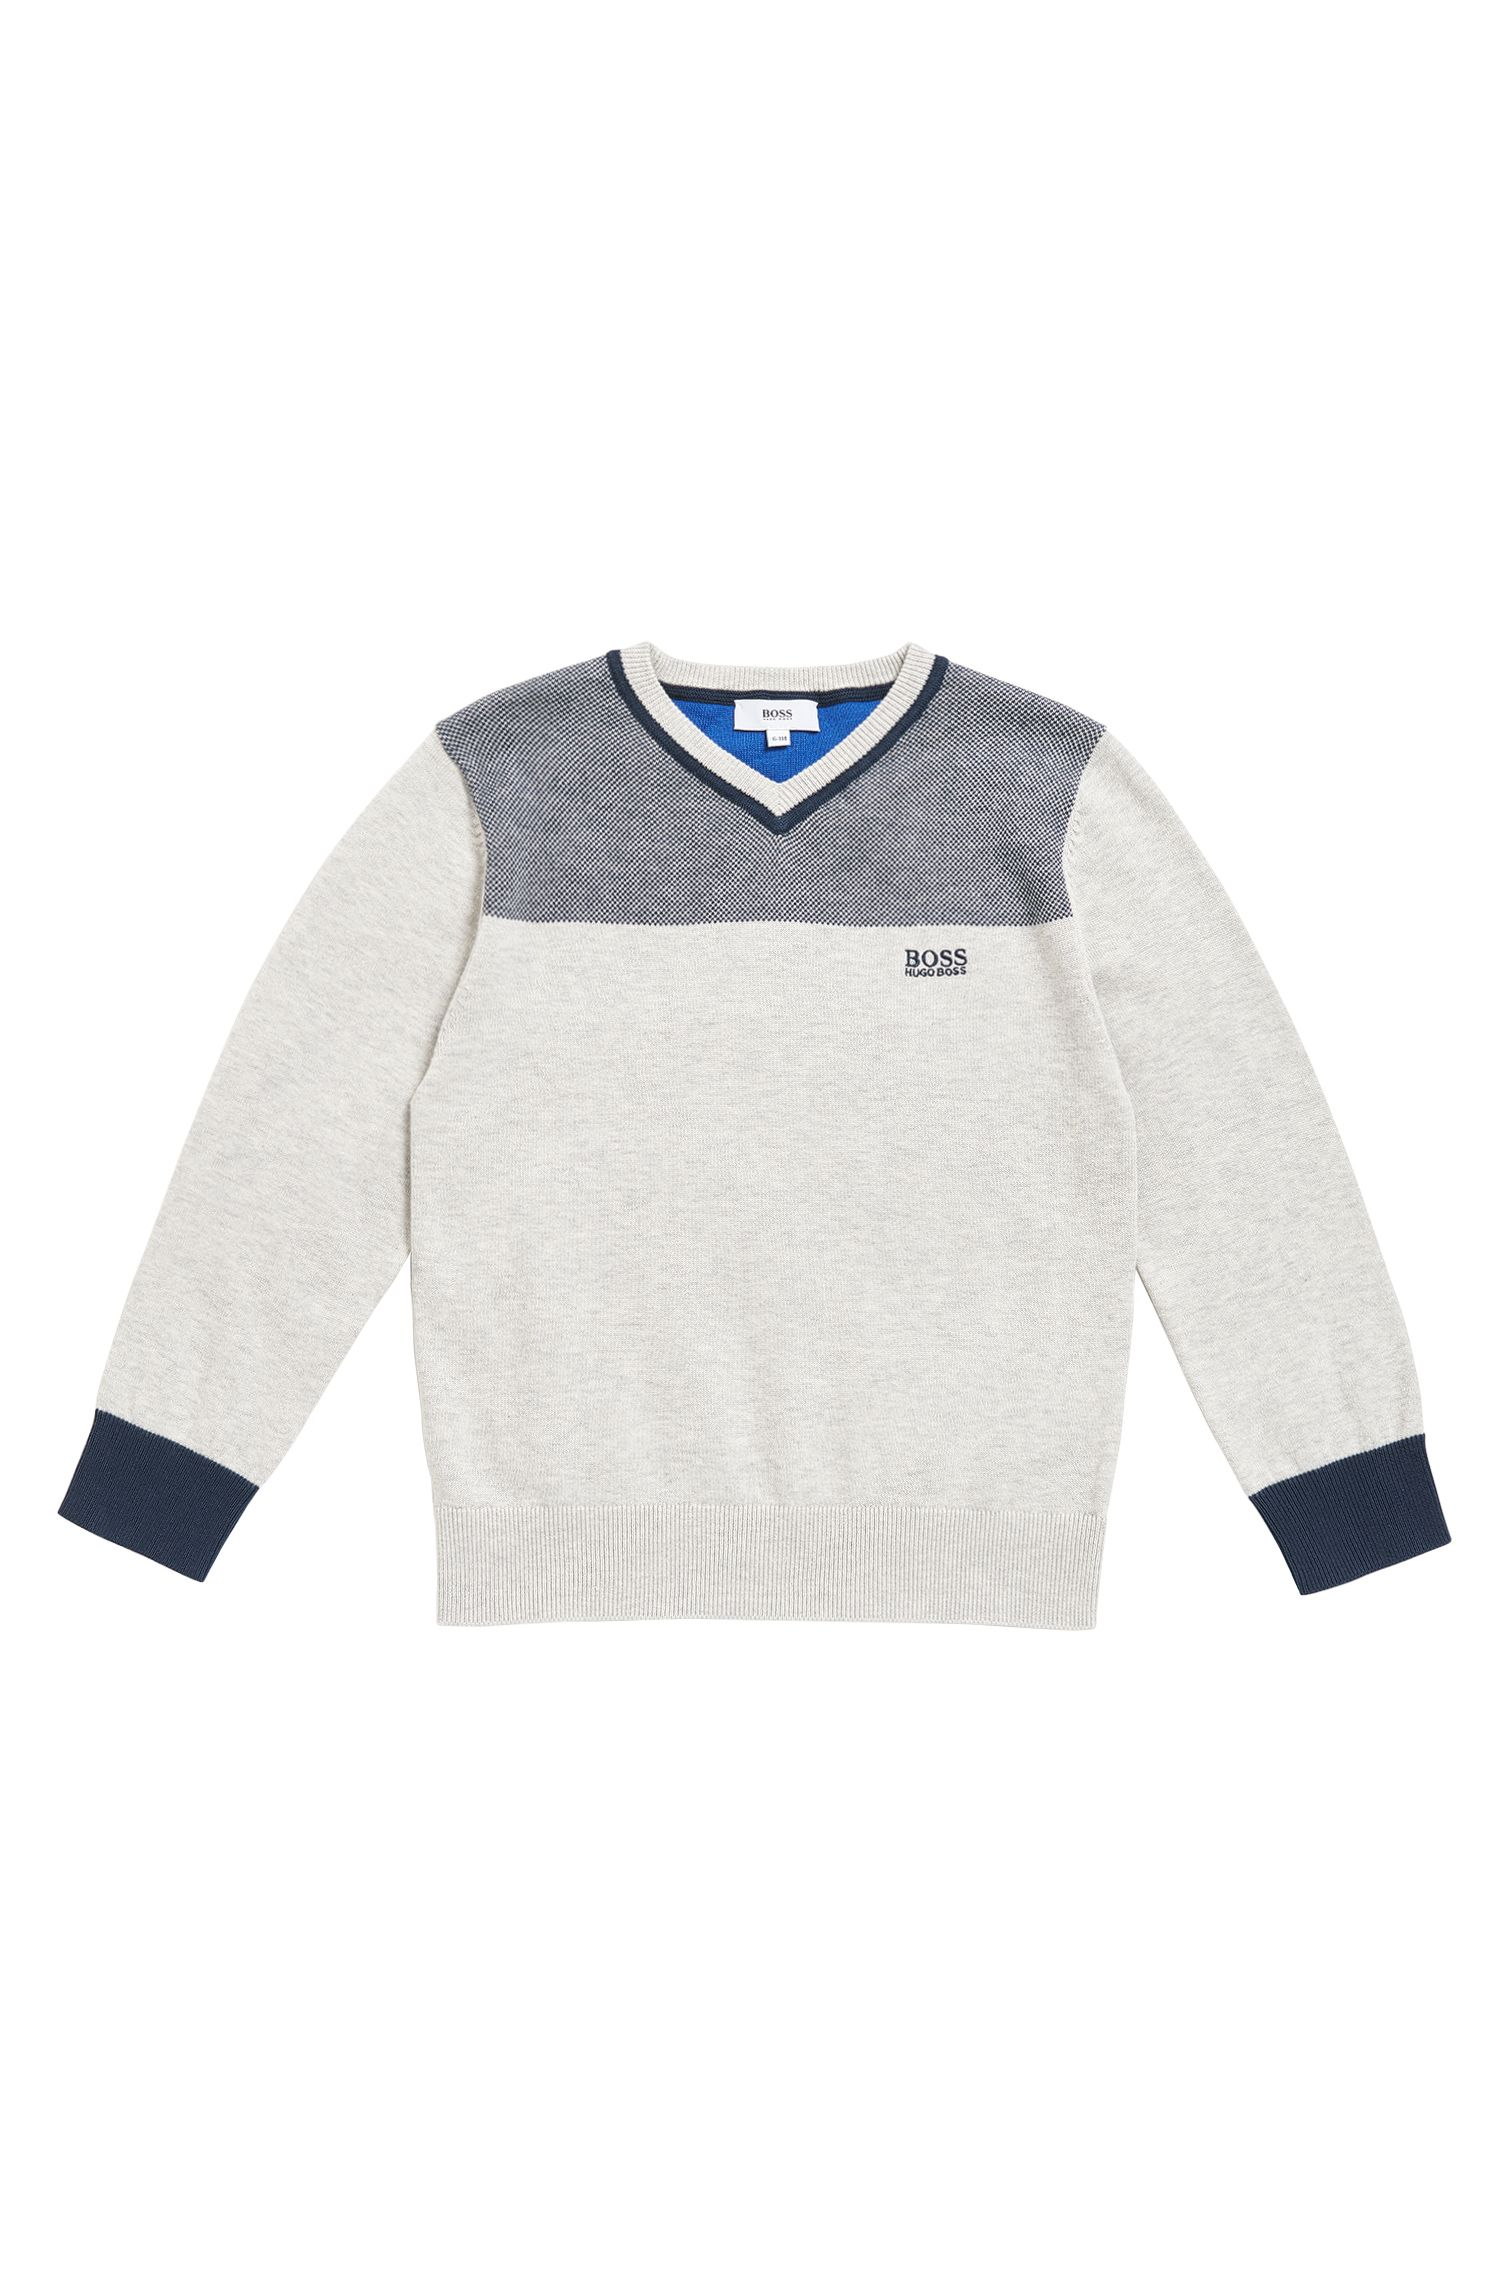 Kids' V-neck sweater in combed cotton